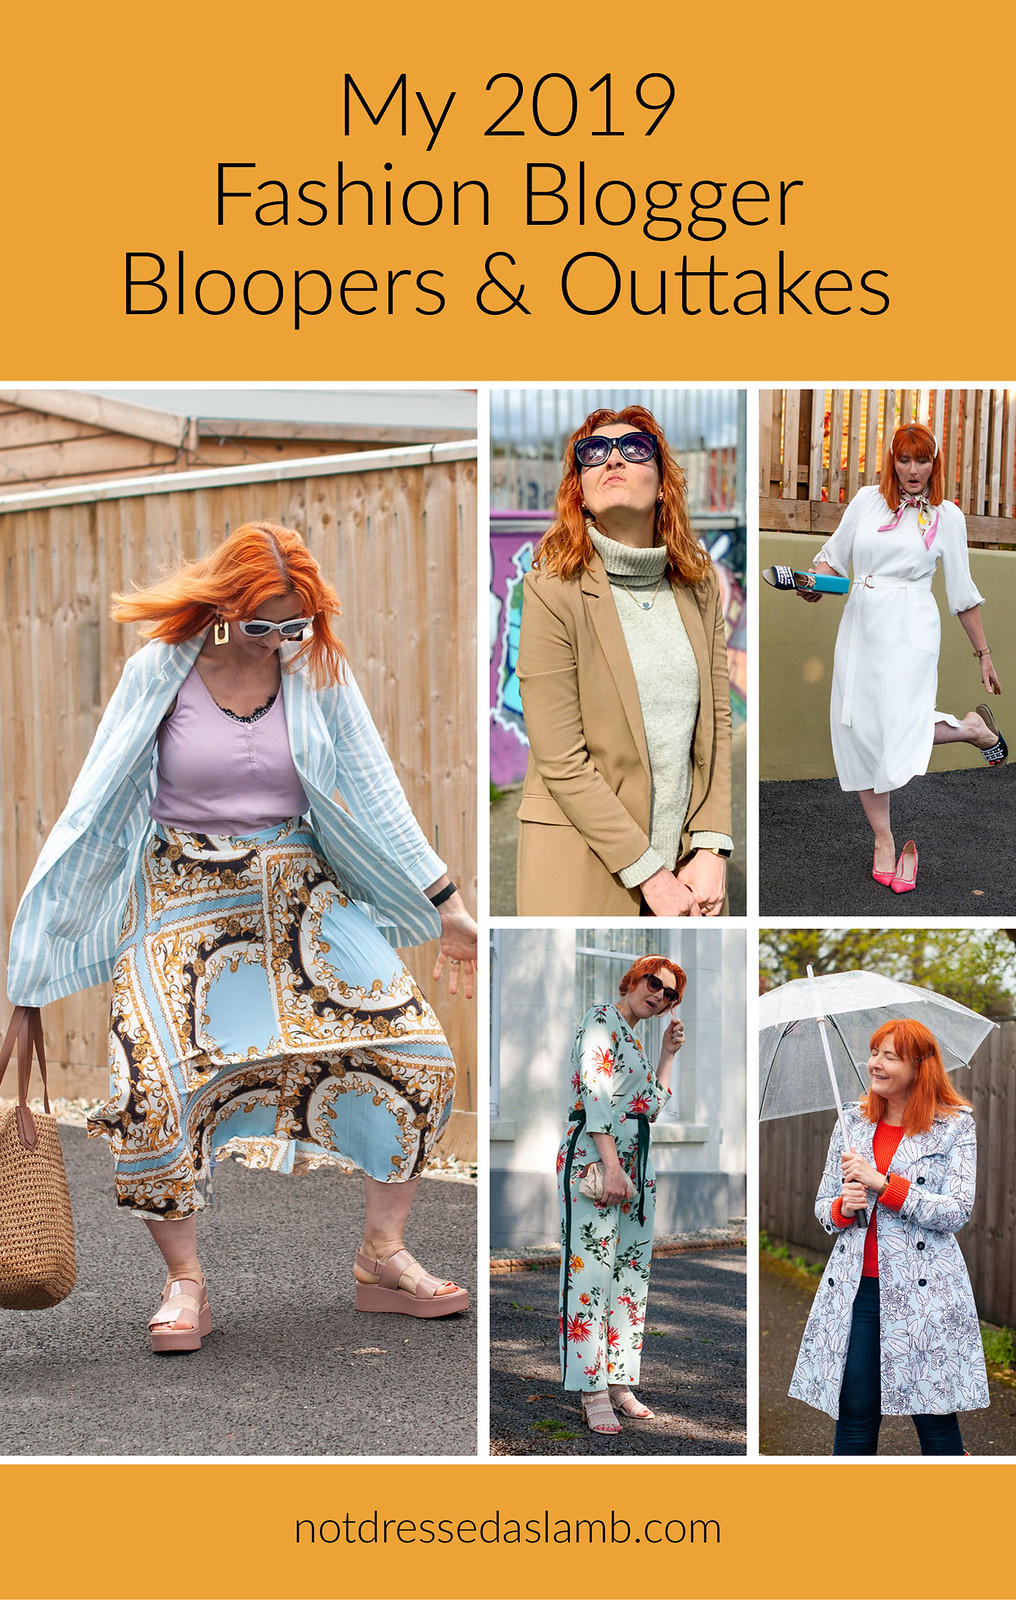 Not Dressed As Lamb Fashion Blogger Bloopers & Outtakes 2019